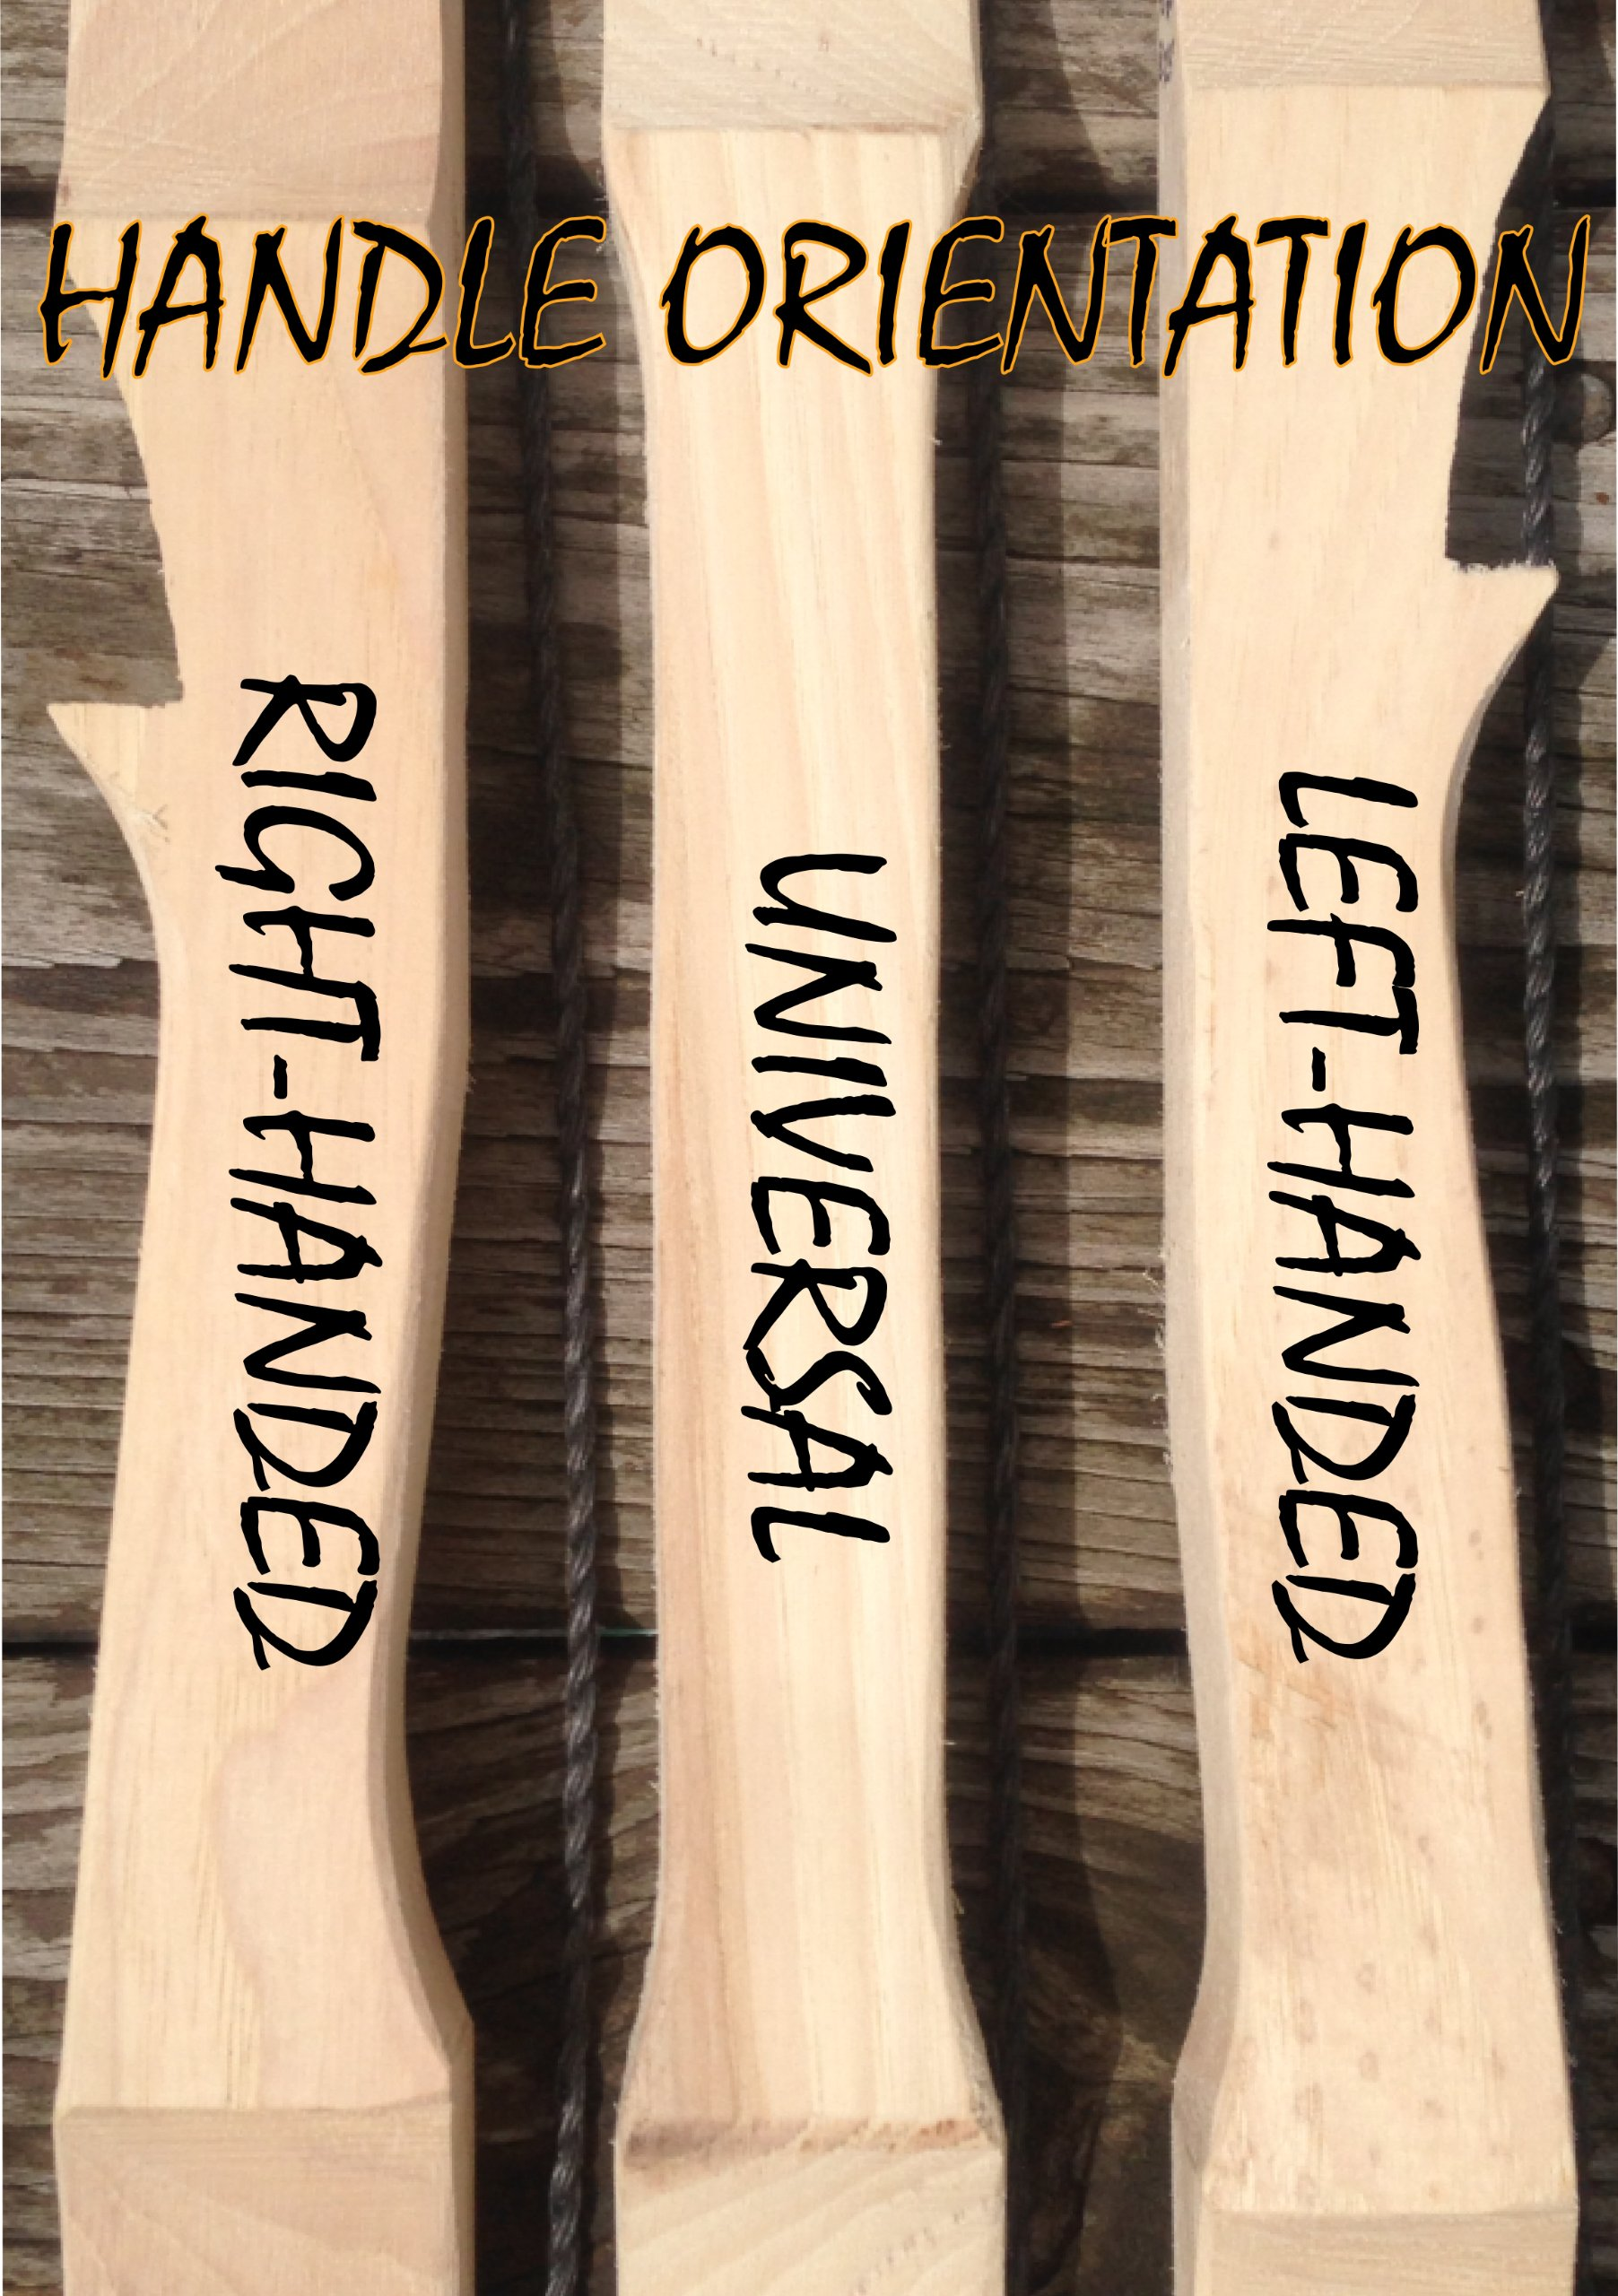 50lb 71'' You-Finish Traditional Hickory Longbow! Competition or Hunting Bow! Wood Archery! by RingingRocksArchery.com (Image #6)